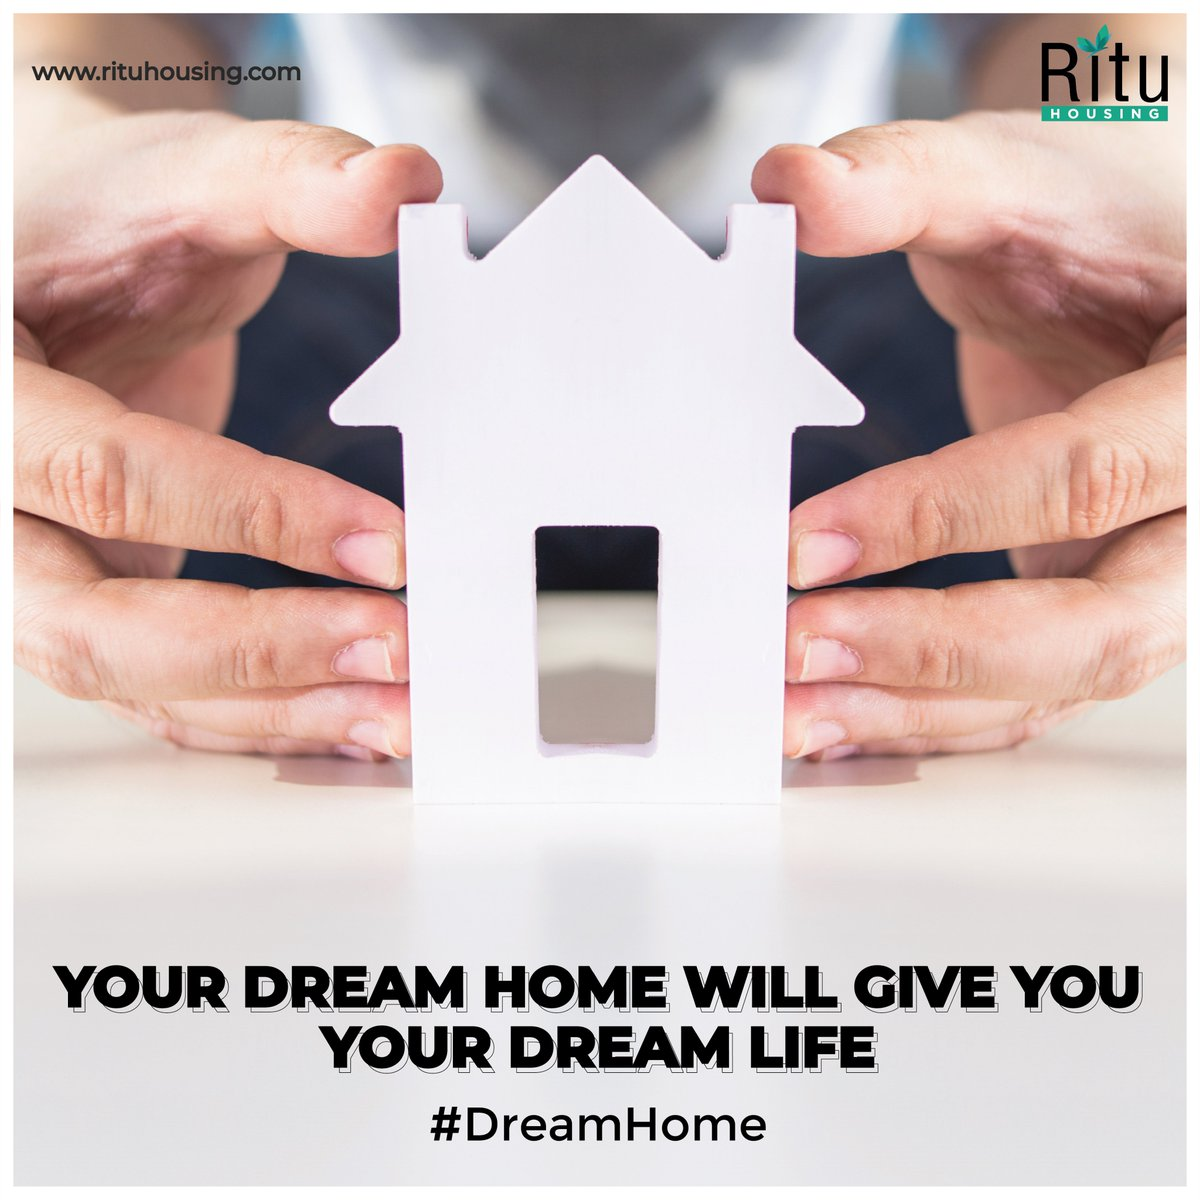 We make your dream home a reality. . . . . #rituhousing #emeraldgarden #emeraldgulistan #developers #kanpur #realestate #happyfamilies #home #property #bonds #forsale #investment #luxury #realtorlife #architecture #kanpurproperties #realestatesales #homes #luxuryhomeskanpur https://t.co/ZkPsQcW44f